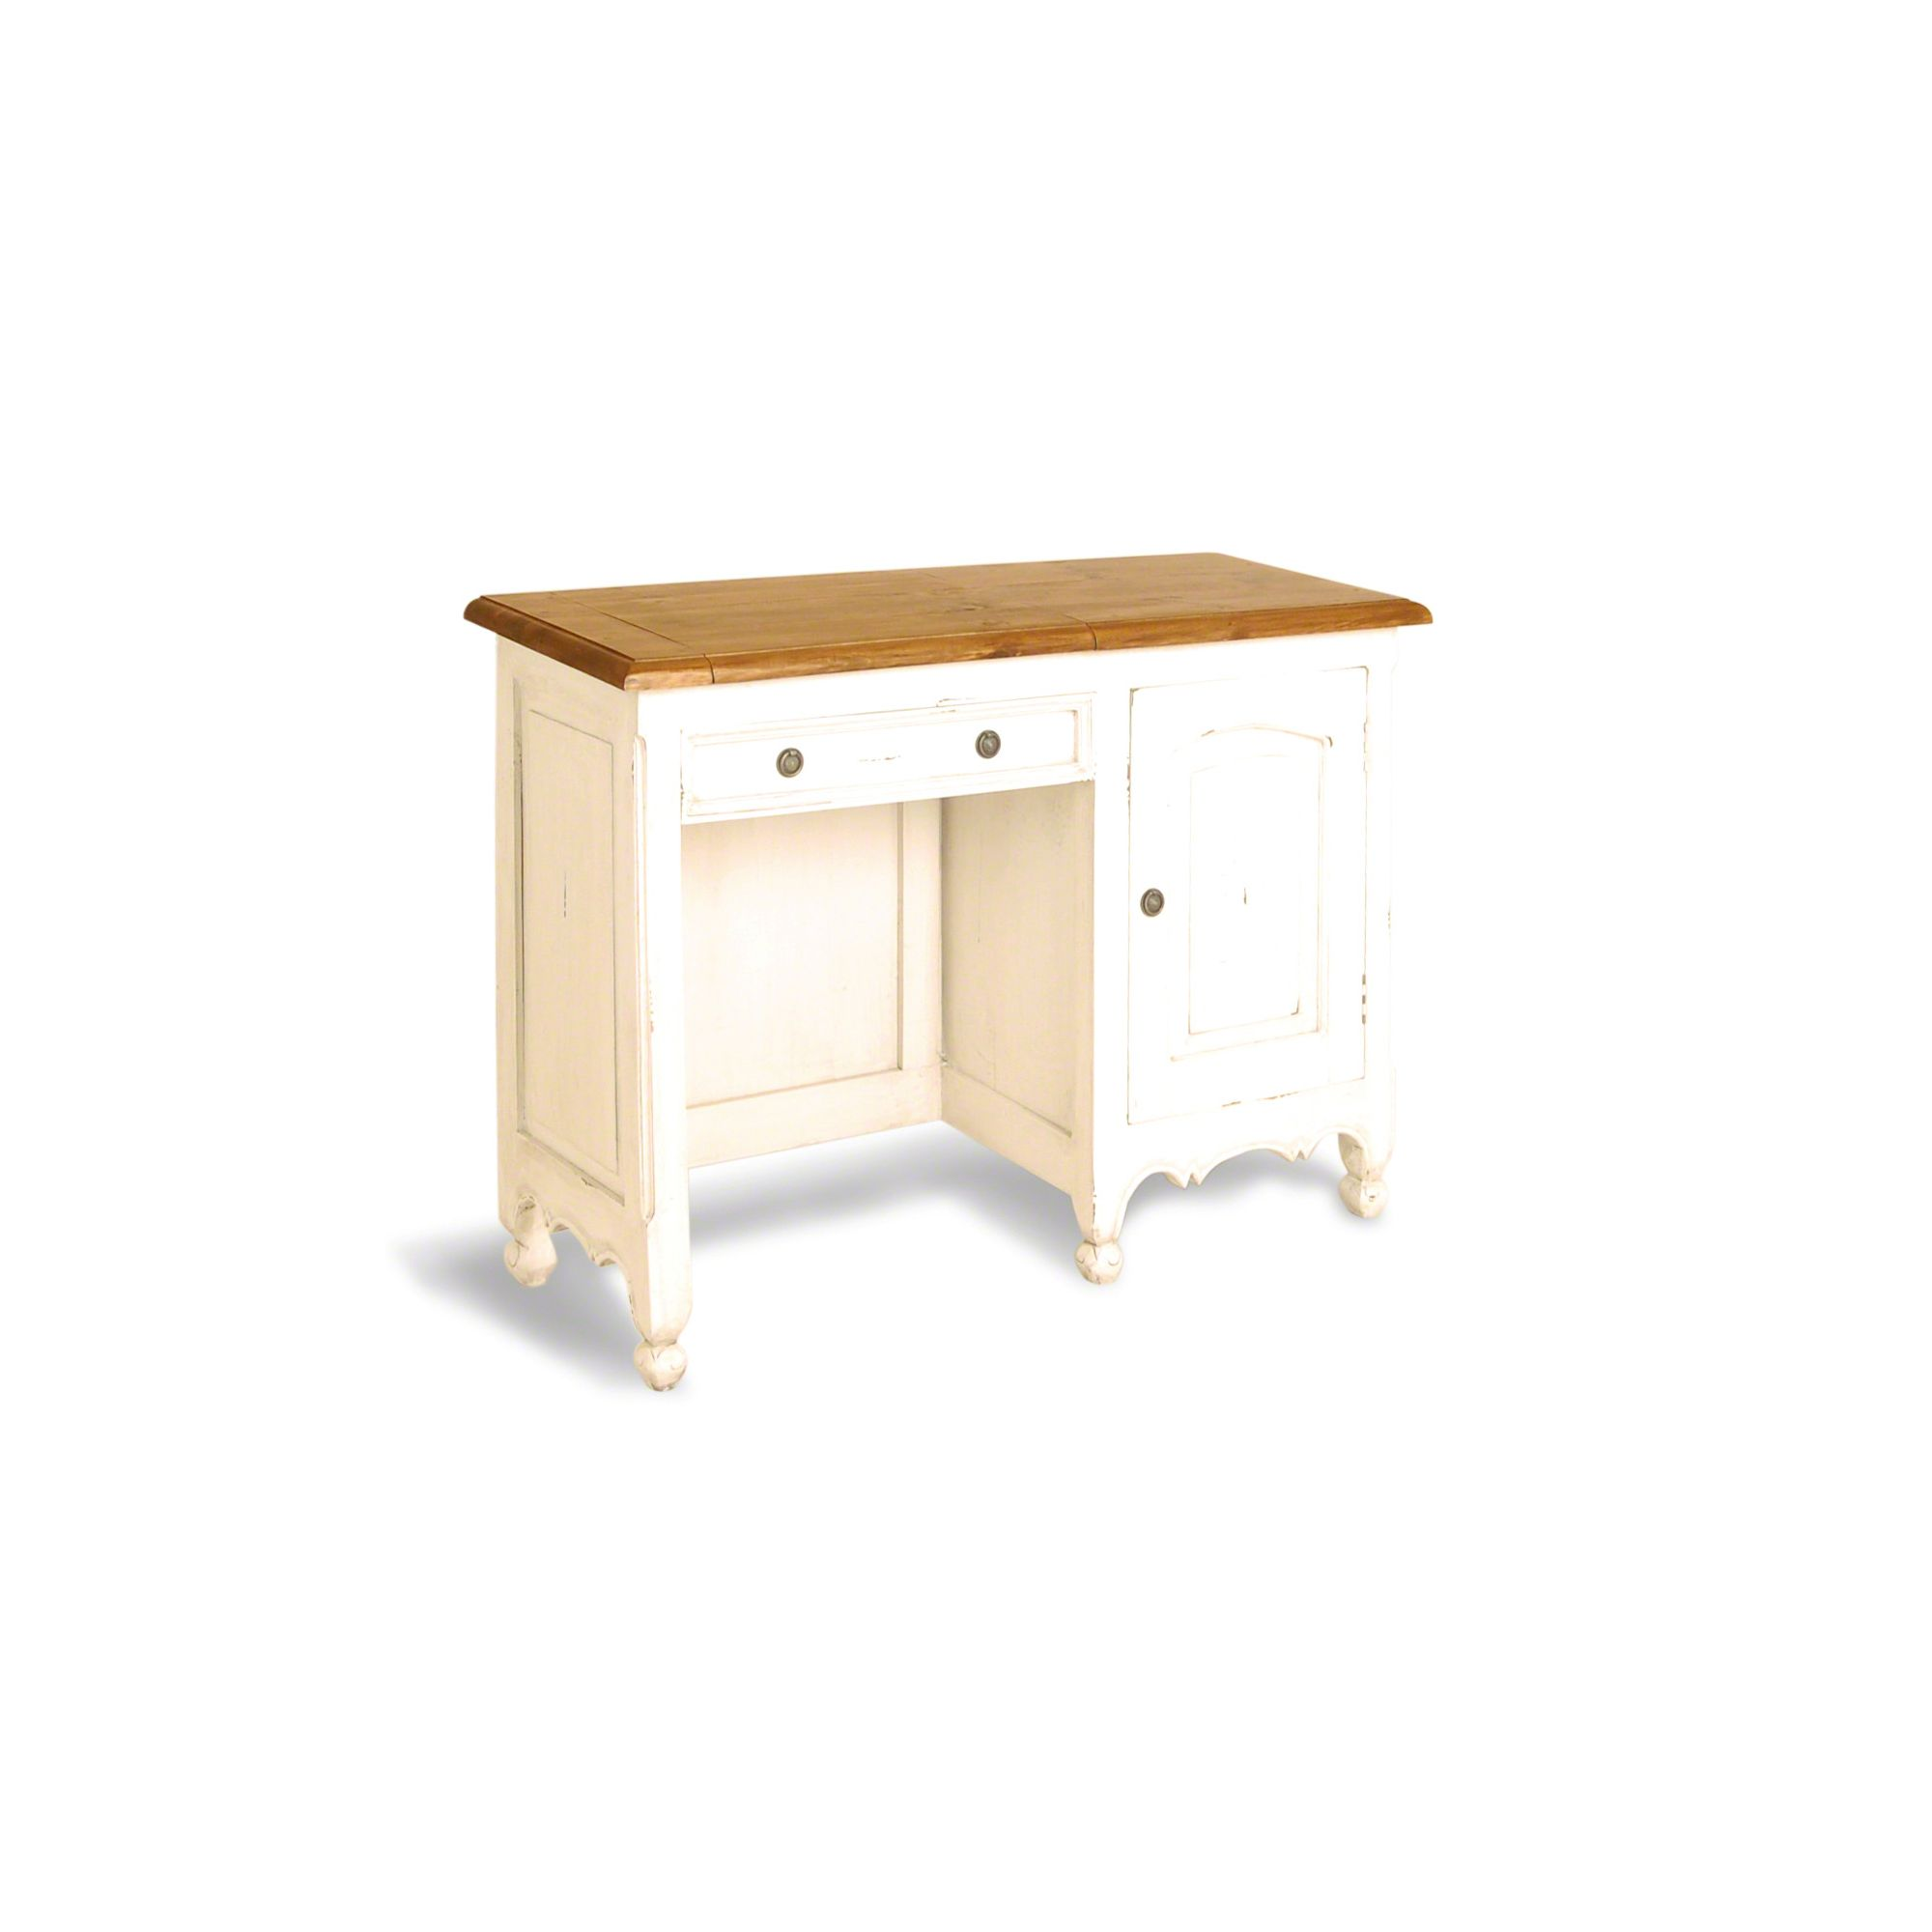 Oceans Apart Painted Provence Small Vanity Table in Antique White at Tesco Direct